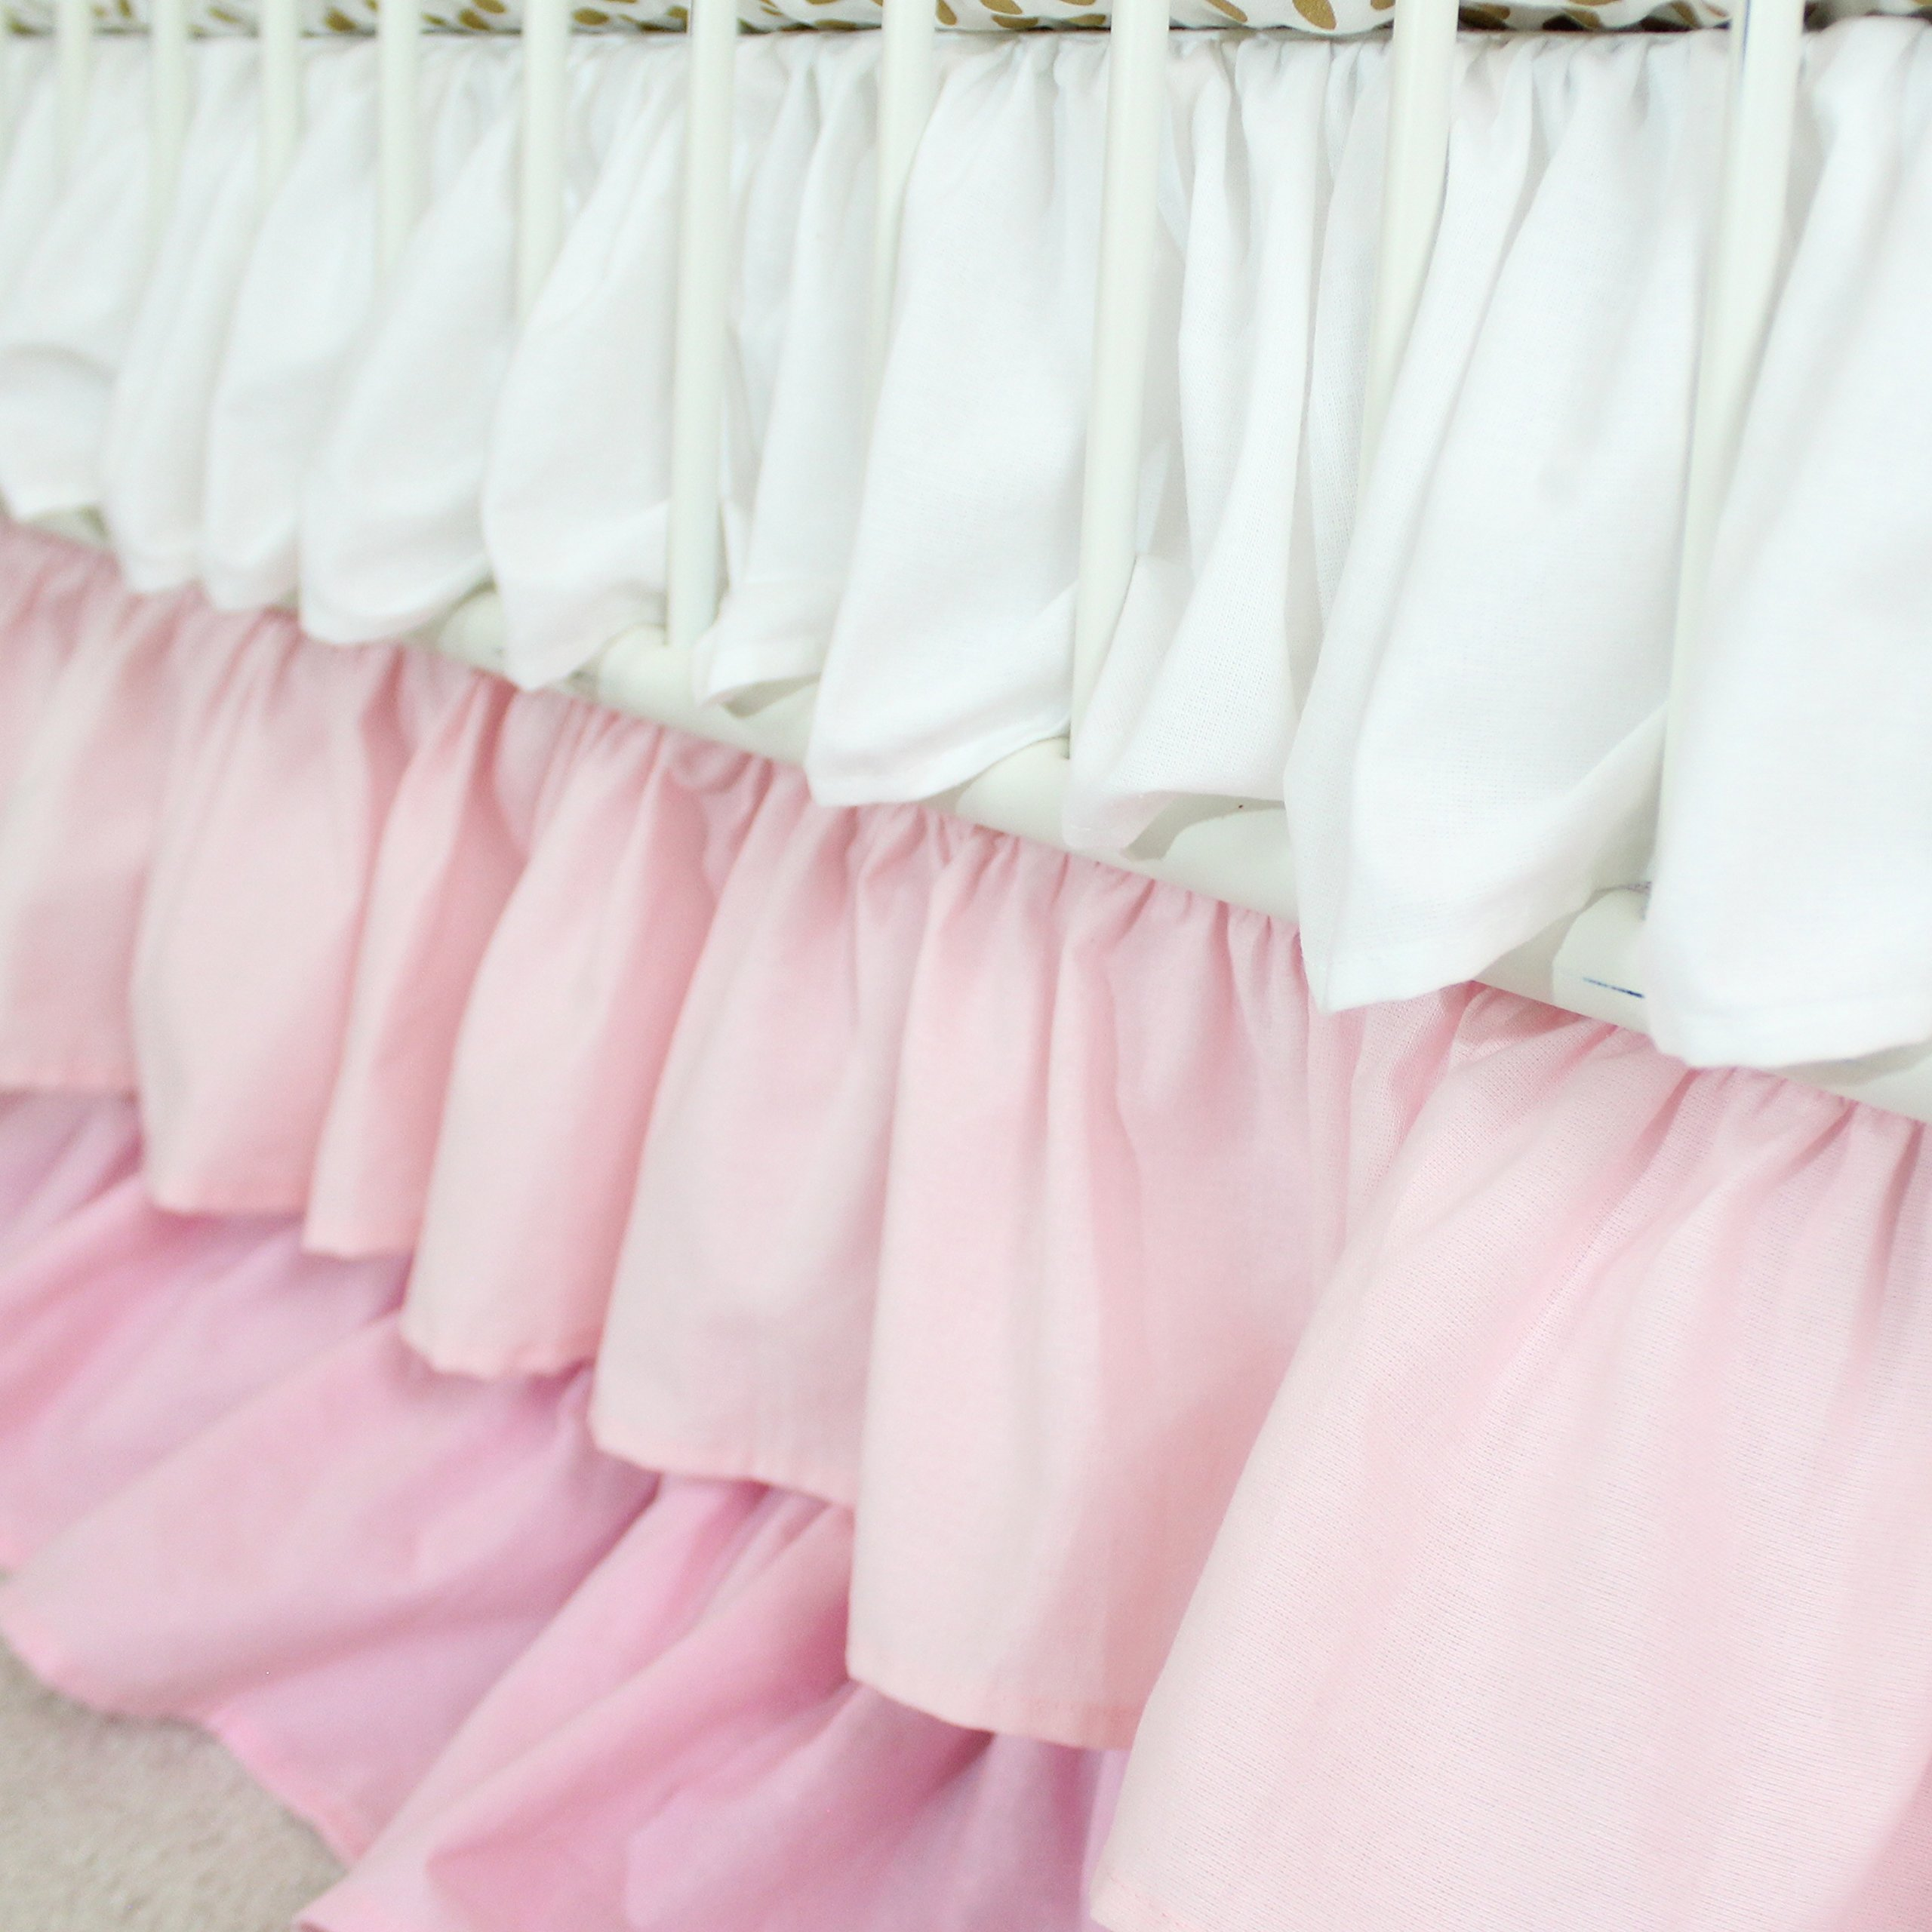 Ombre 3 Tiered Ruffled Crib Skirt - Fits standard cribs (White to Blush Pink Waterfall)